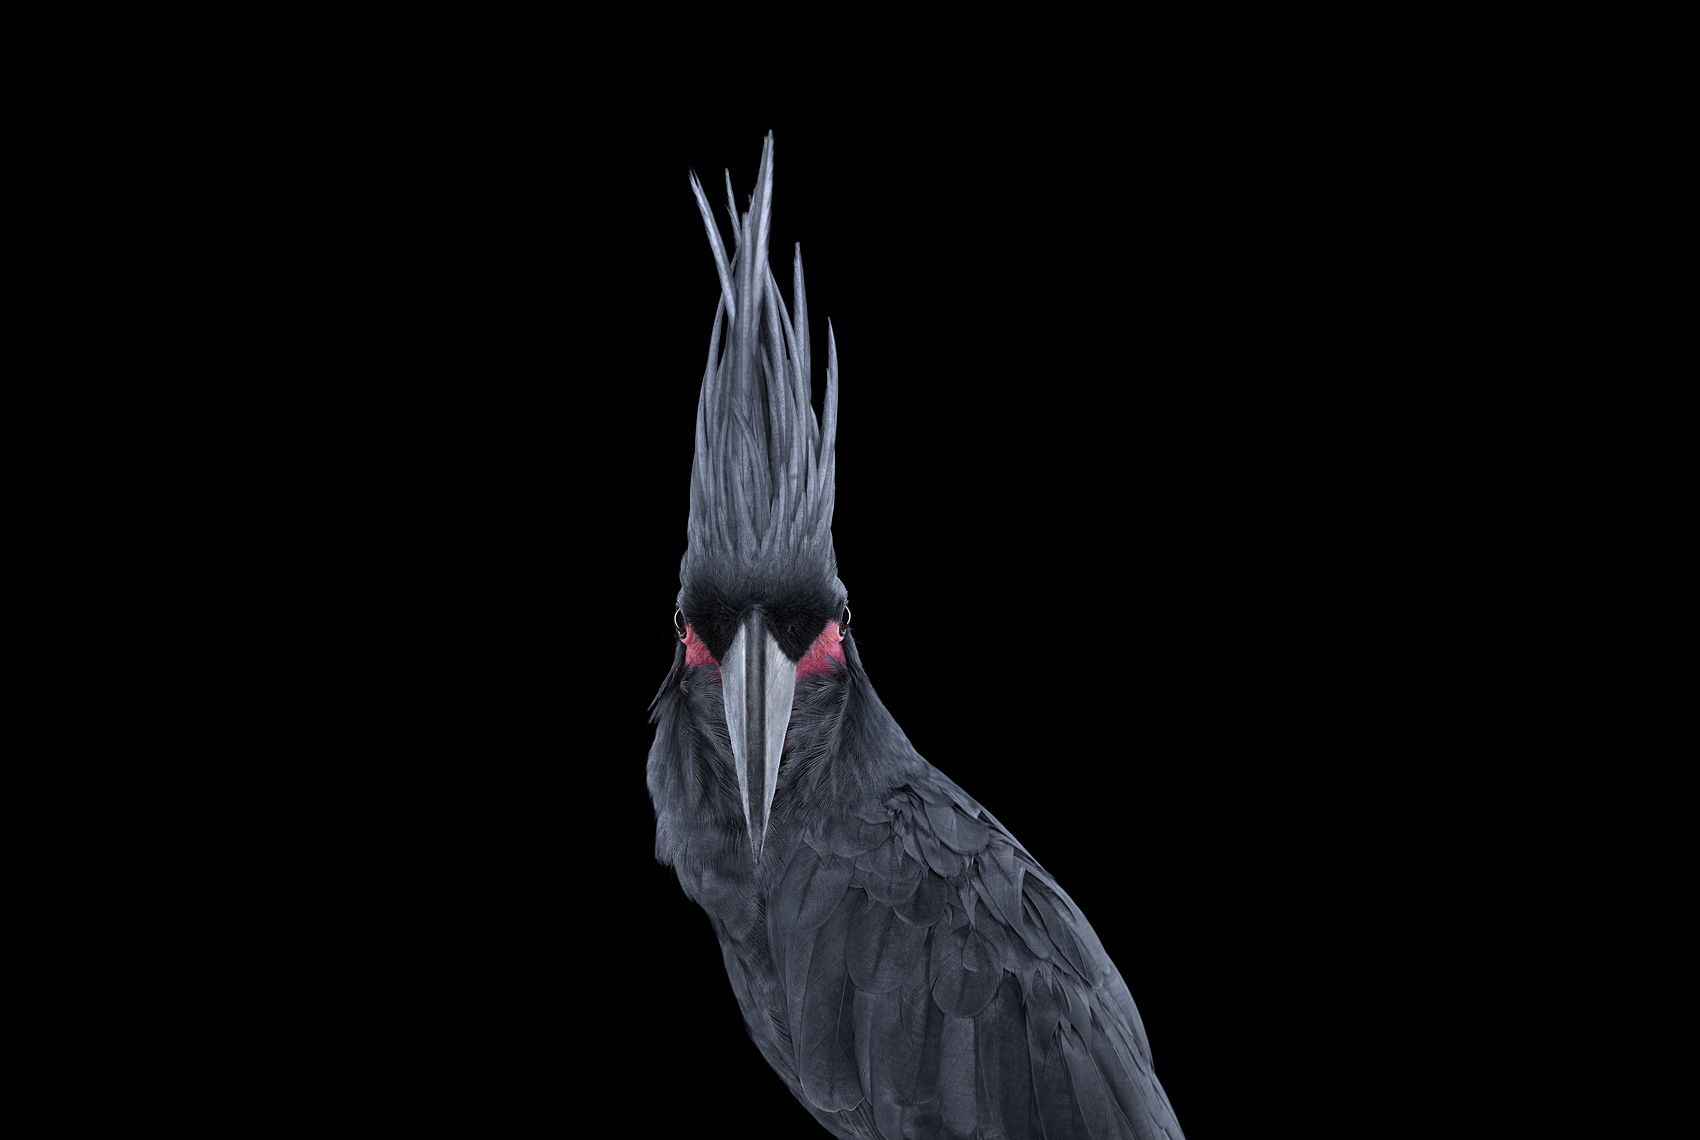 Palm Cockatoo #2, Los Angeles, CA, 2016